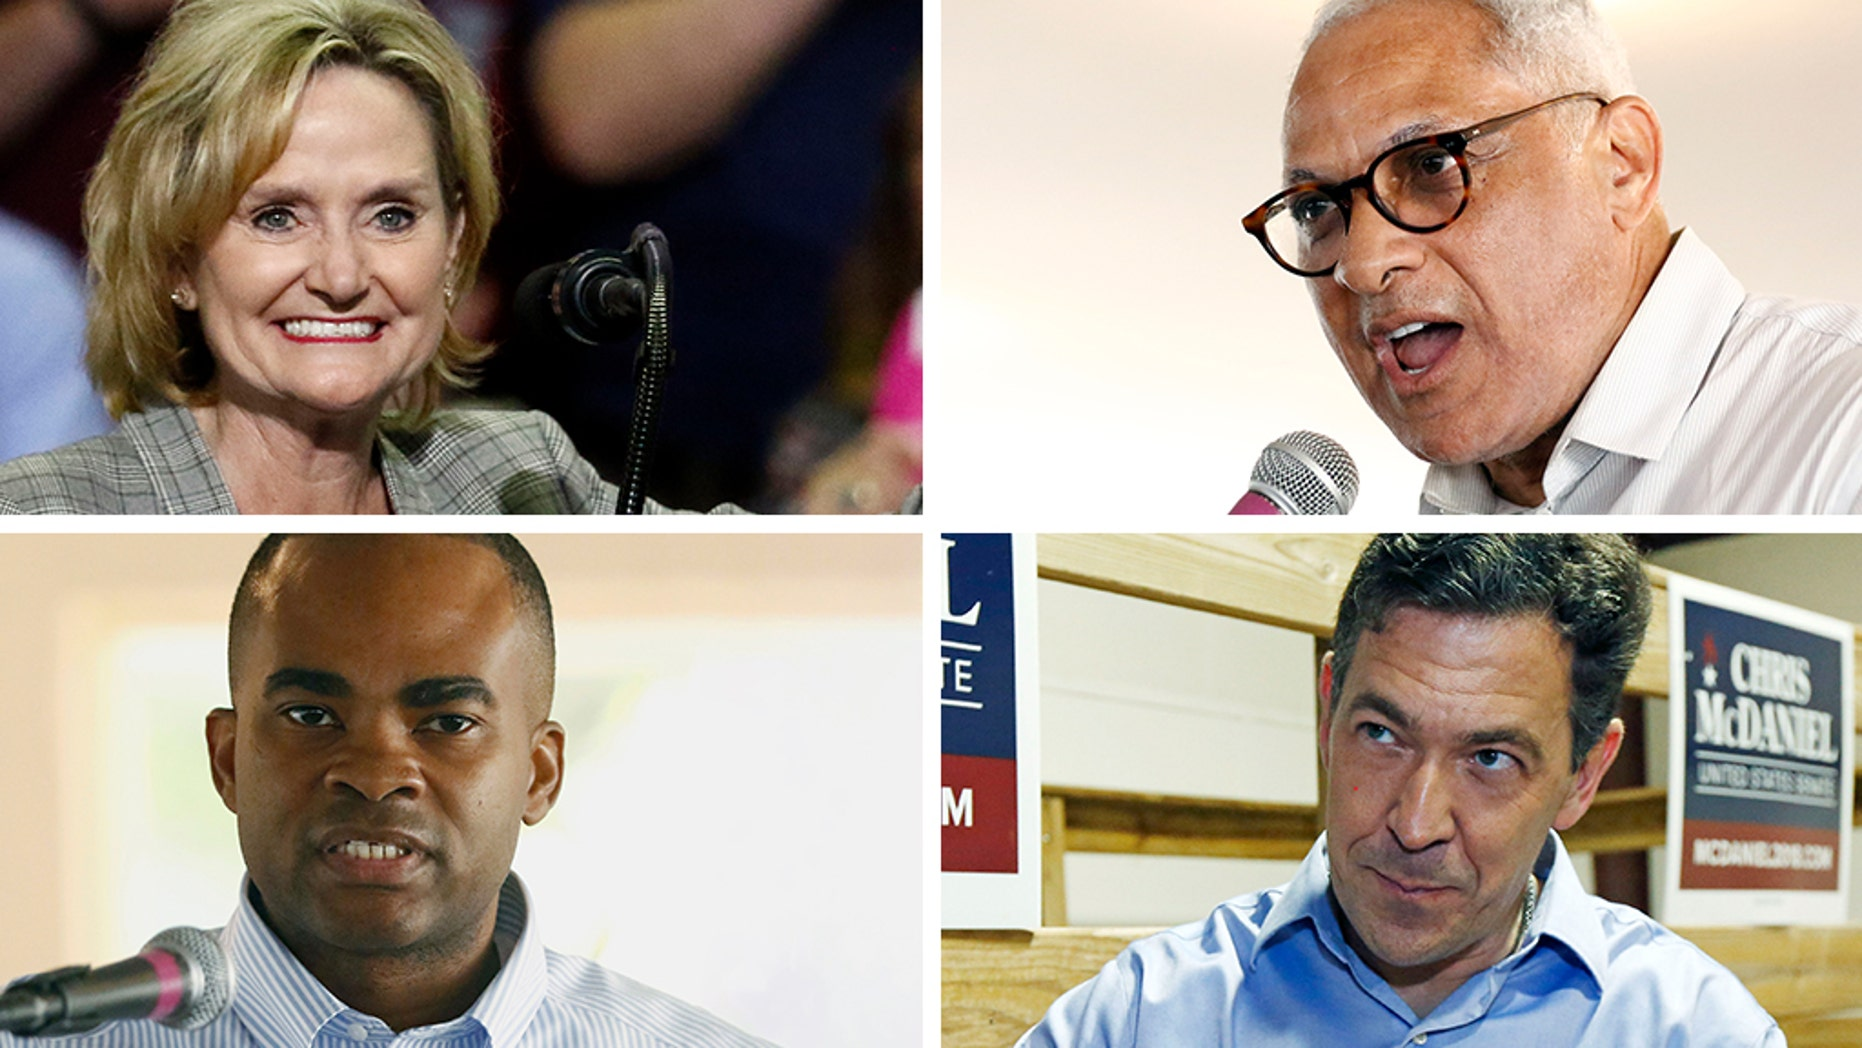 On Top U.S. Sen Cindy Hyde-Smith, R-Miss. (left) and Mike Espy, a former congressman and a former U.S. agriculture secretary. At the bottom Tobey Bernard Bartee and Chris McDaniel (AP)